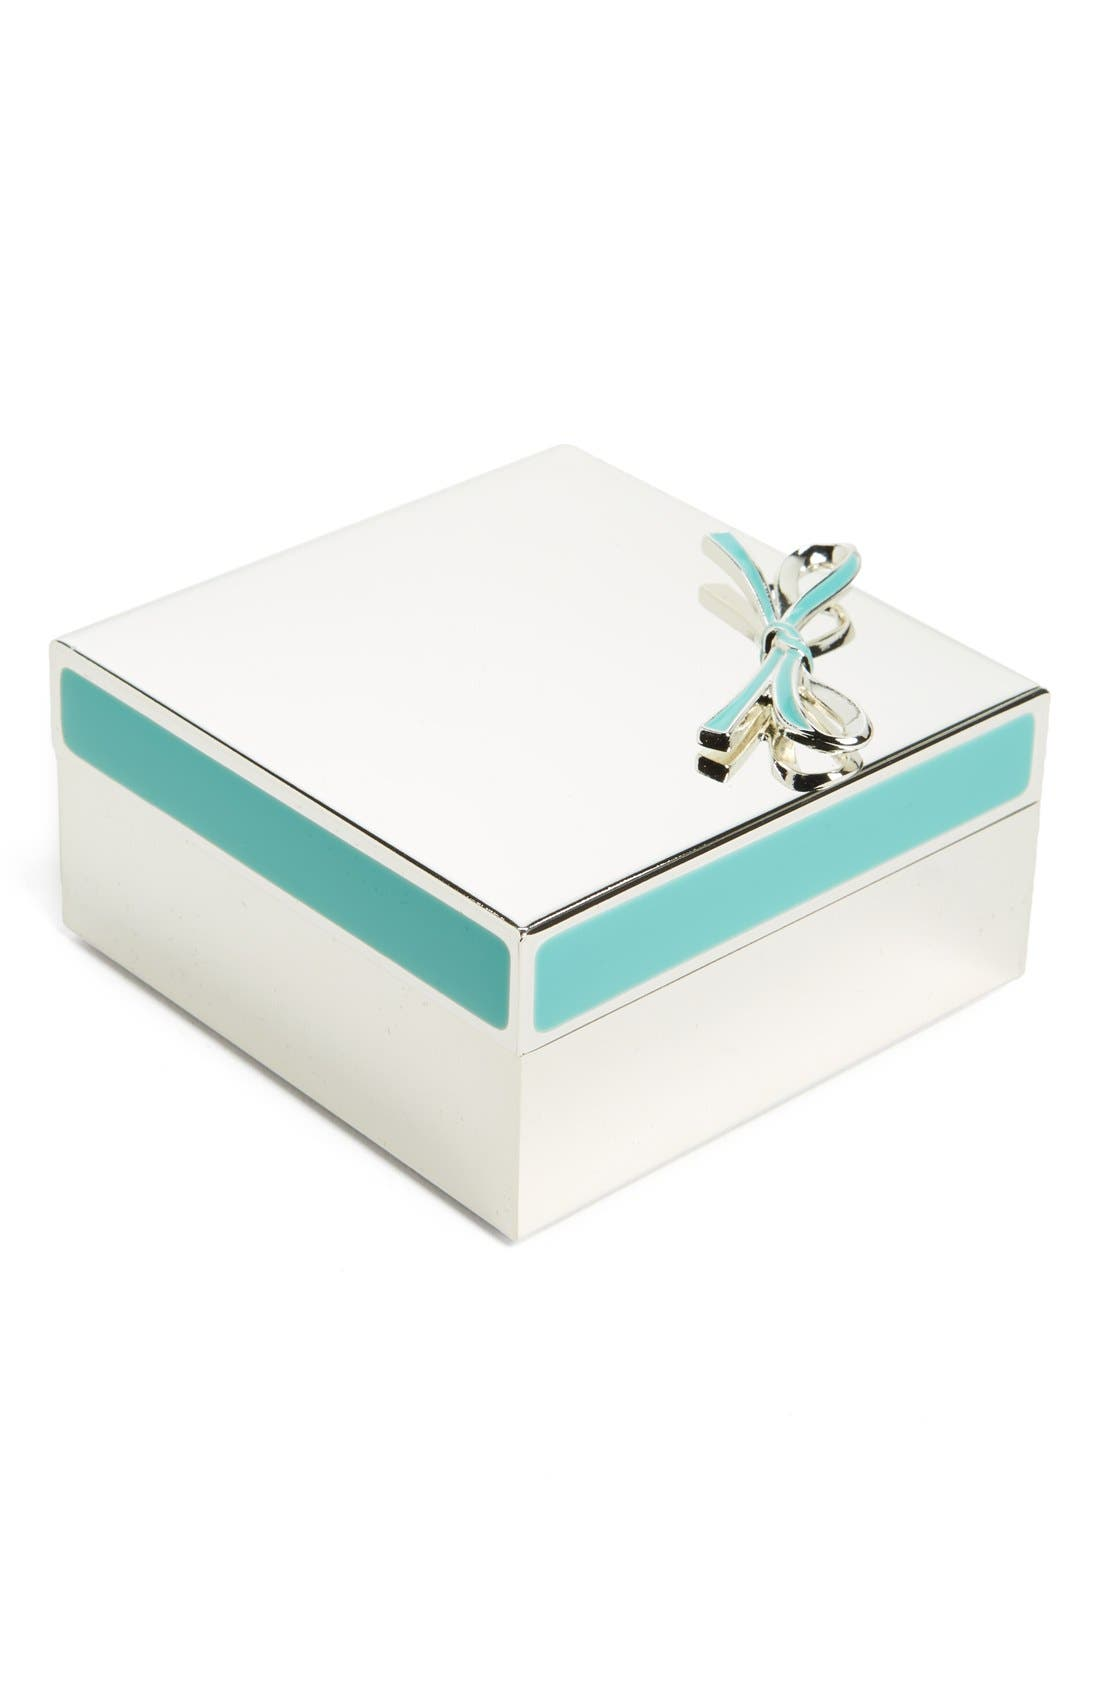 Main Image - kate spade new york 'vienna lane' keepsake box